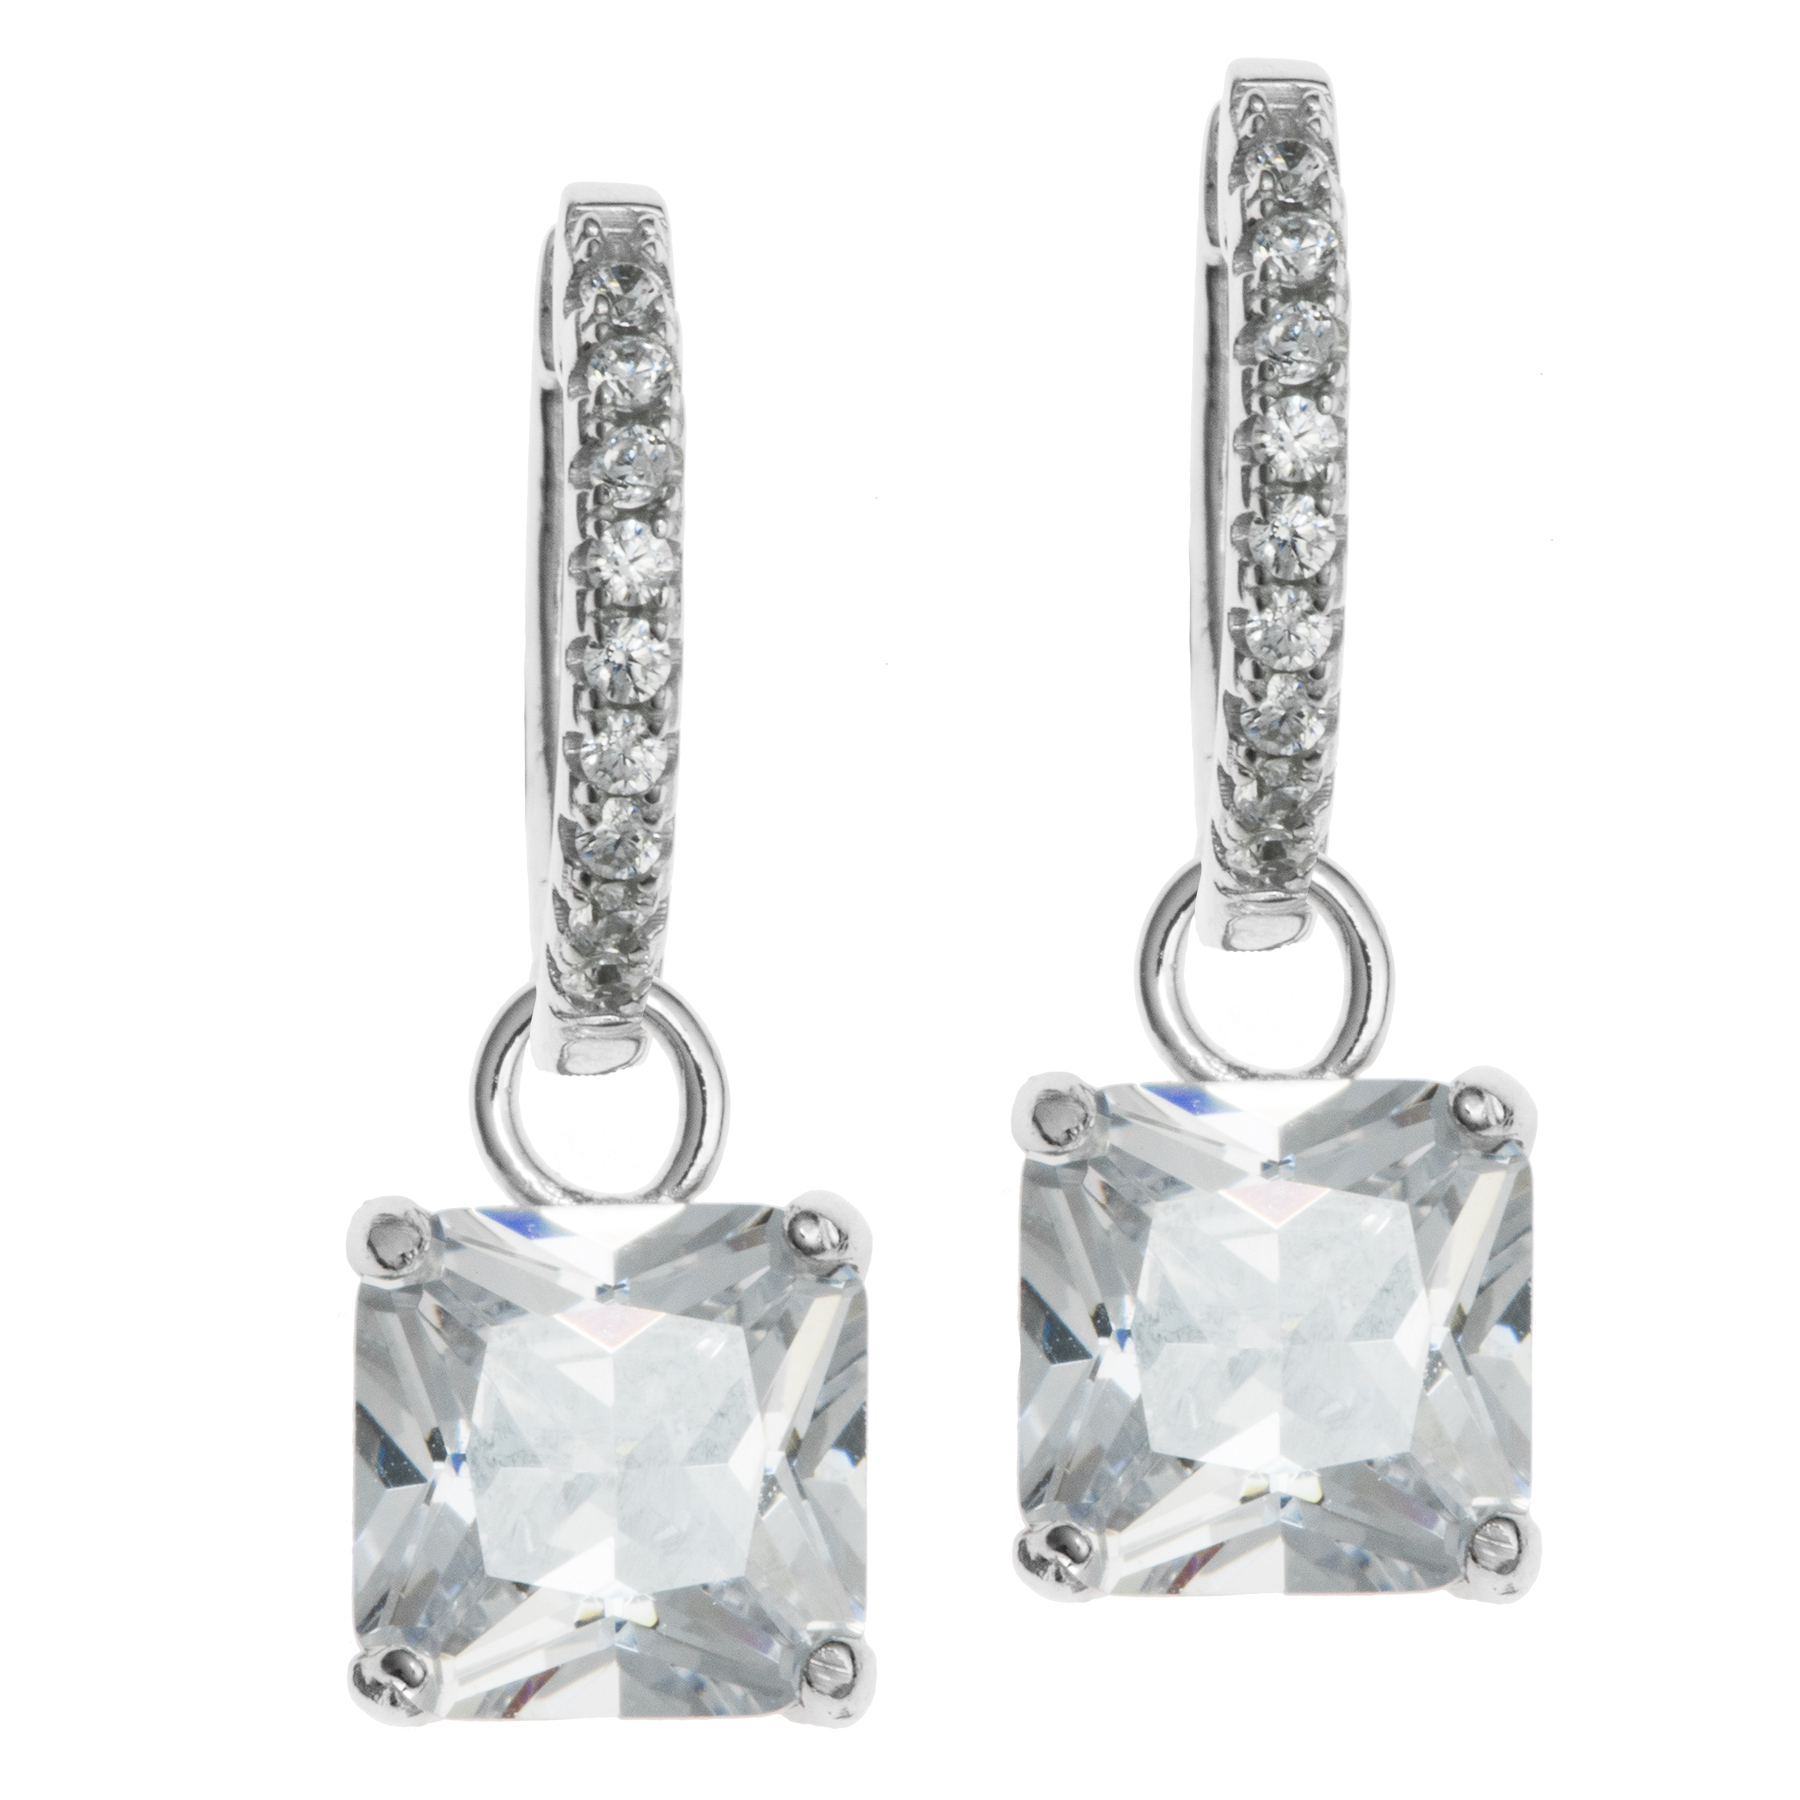 2x Rhodium on Sterling Silver Square Clear CZ Crystal Charm Hoop Huggie Dangle Earring